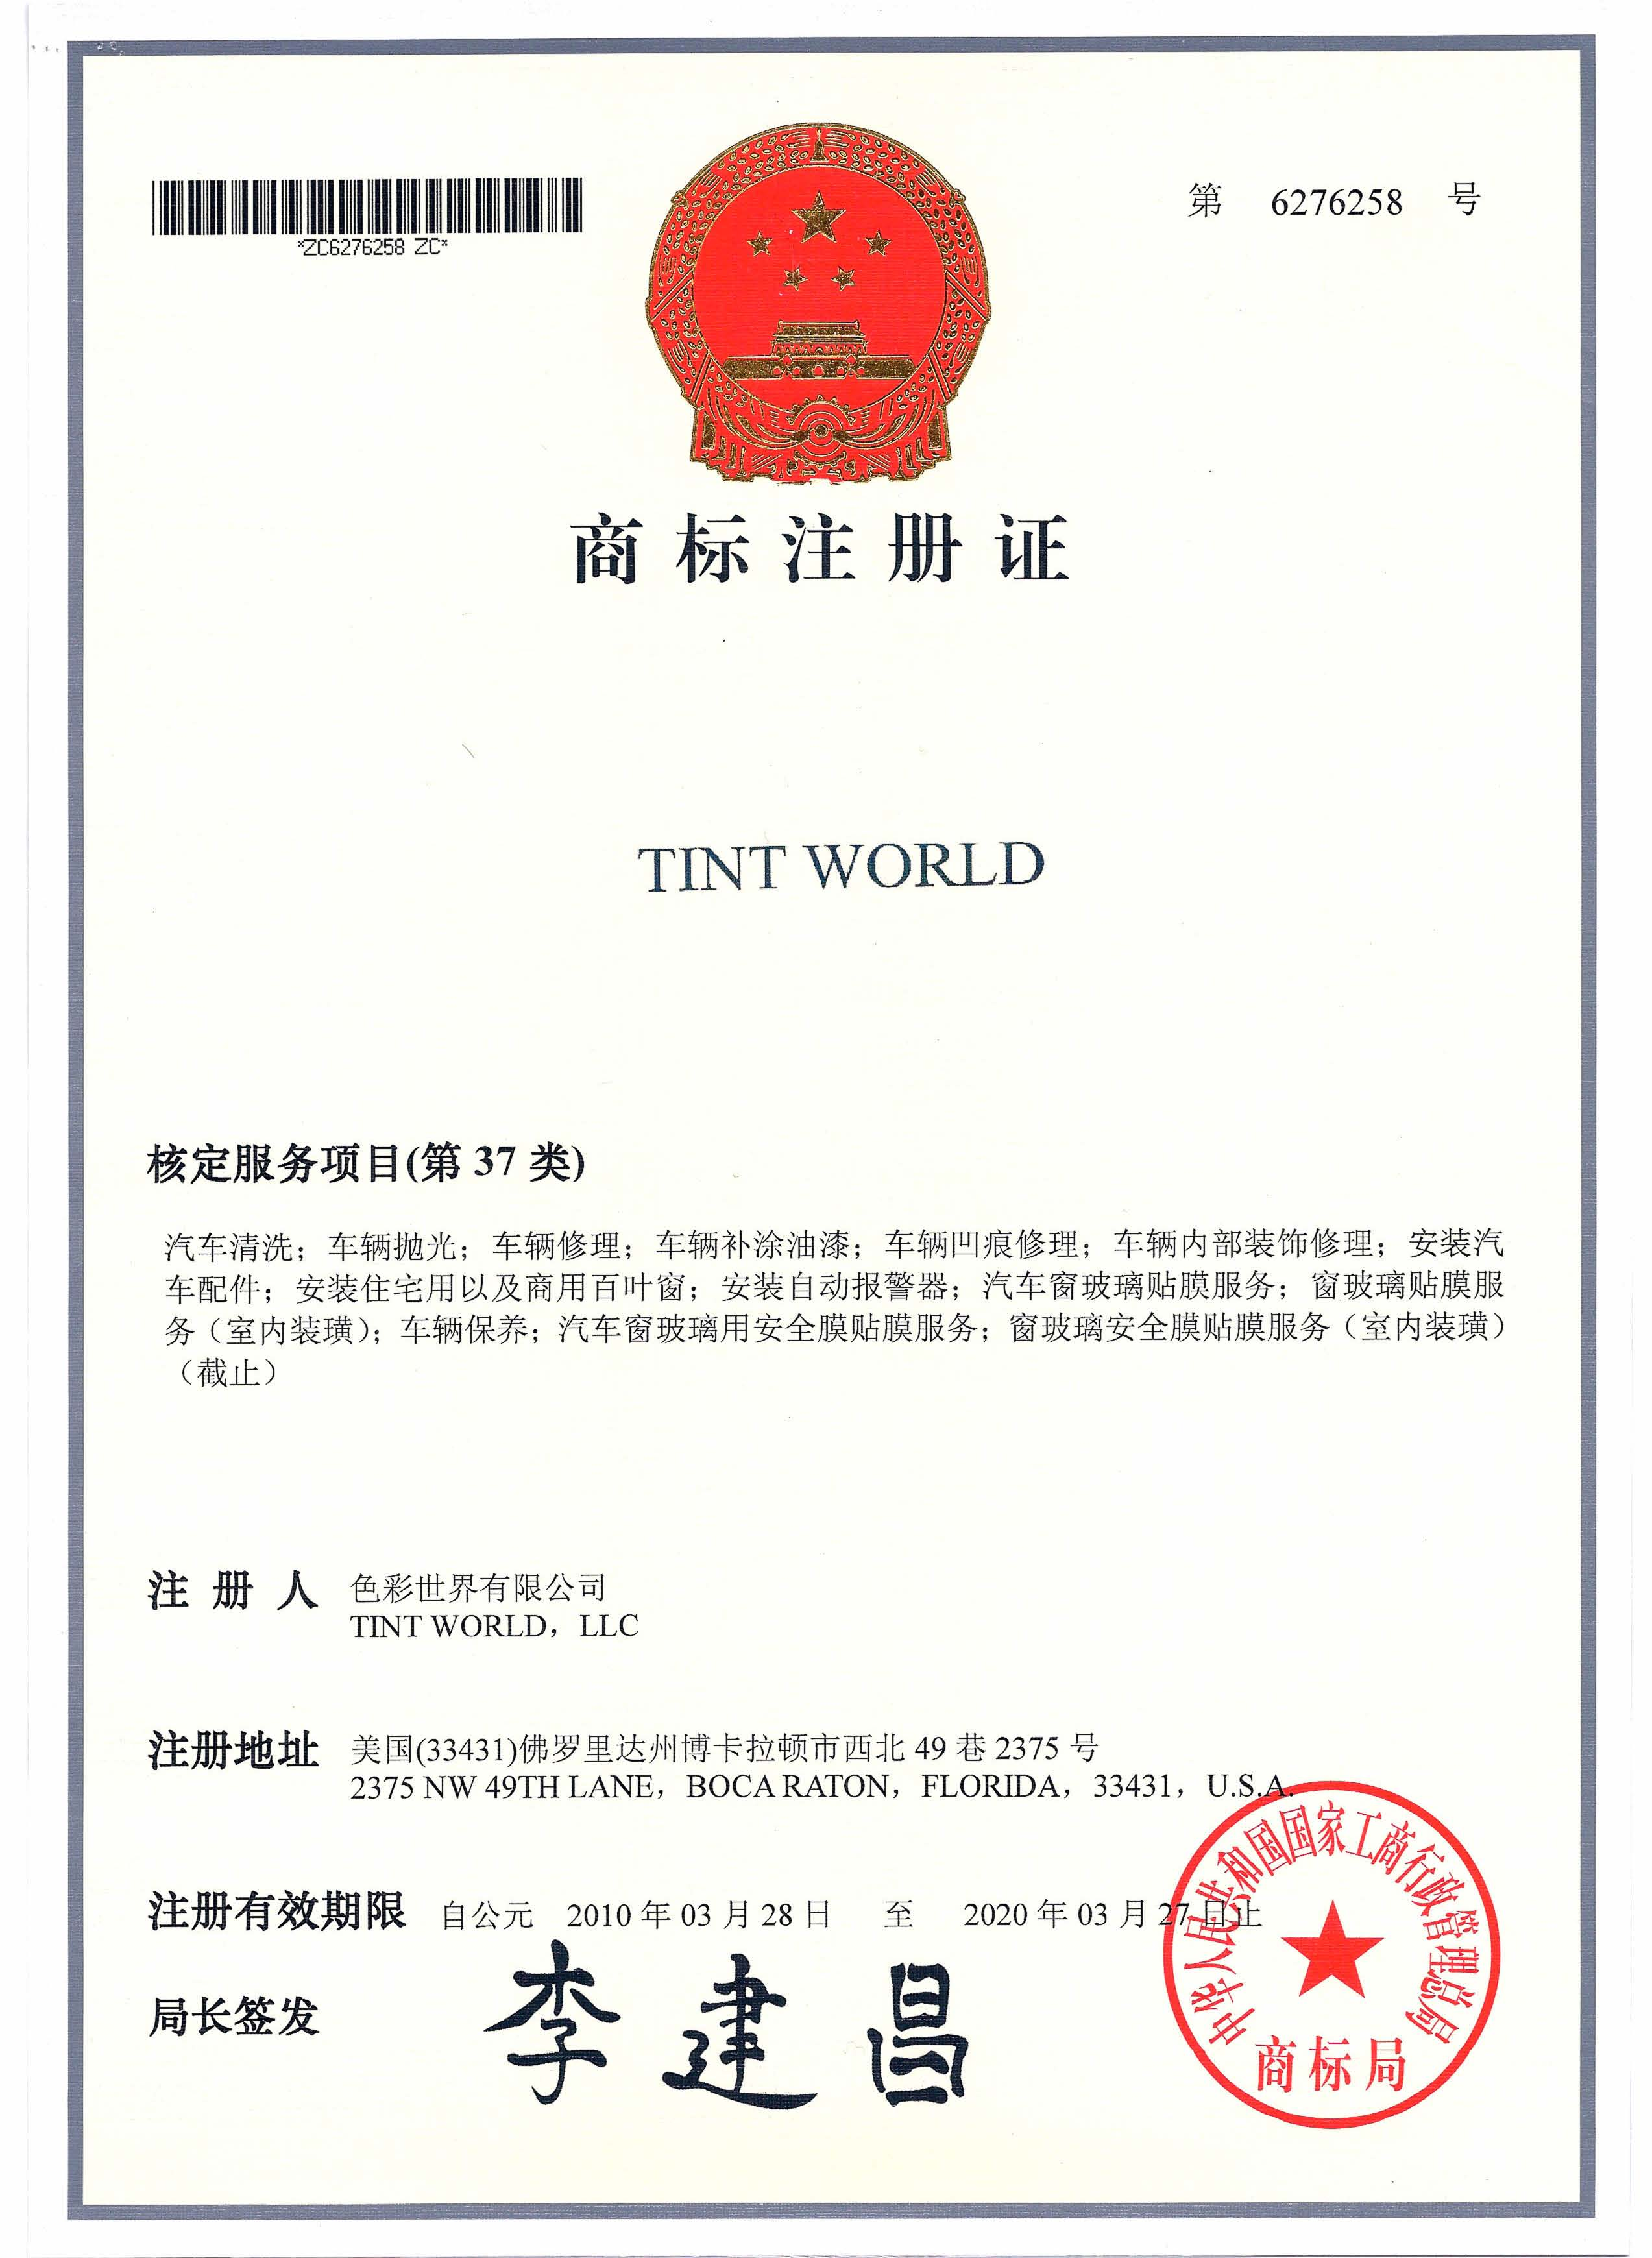 Mobile Tire Service >> Tint World® Franchise Secures Chinese Registered Trademark ...